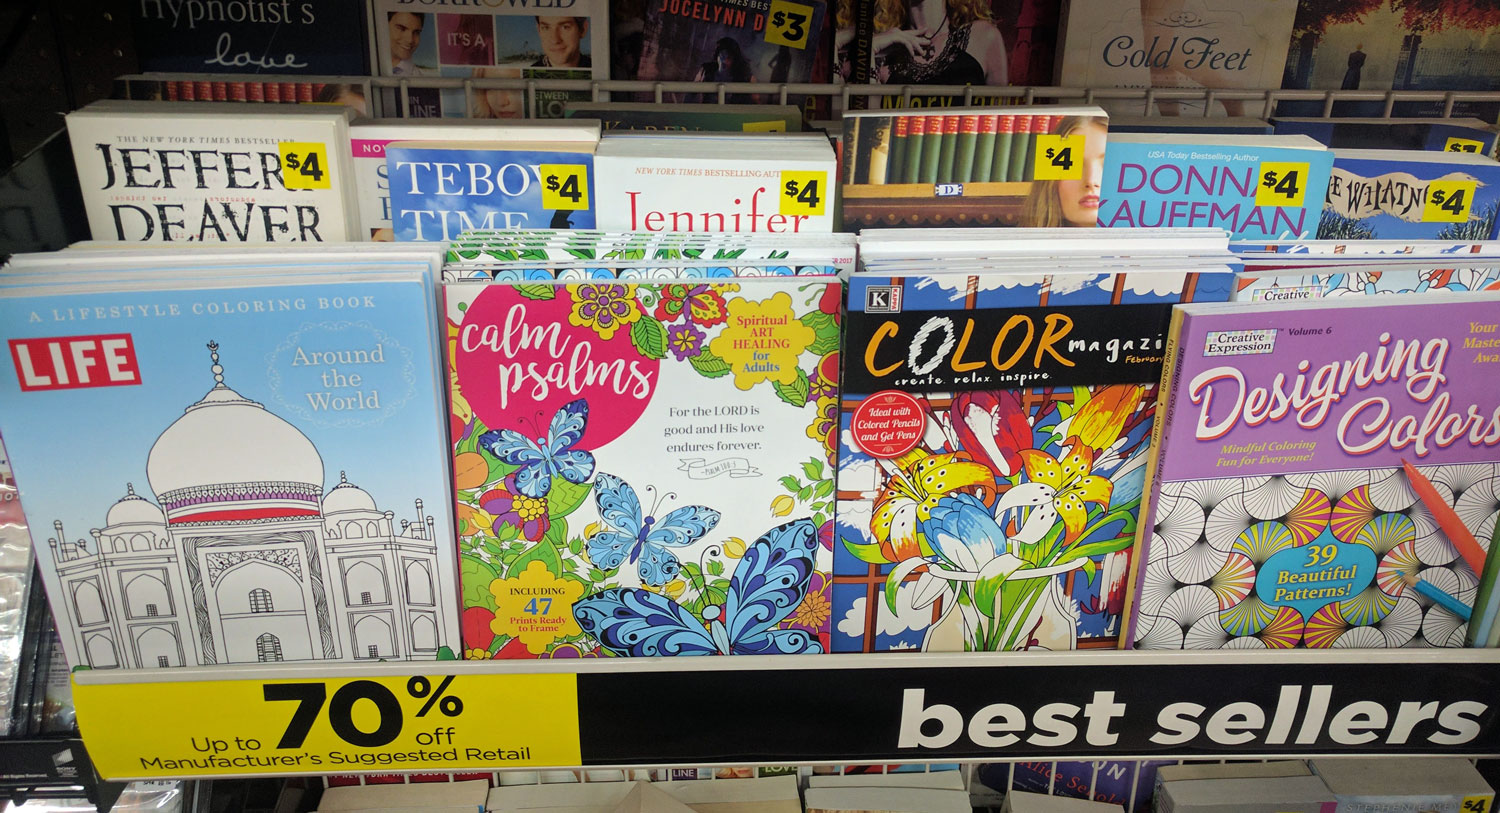 365vacay putting life before work dollar tree christmas coloring books - Dollar Tree Coloring Books